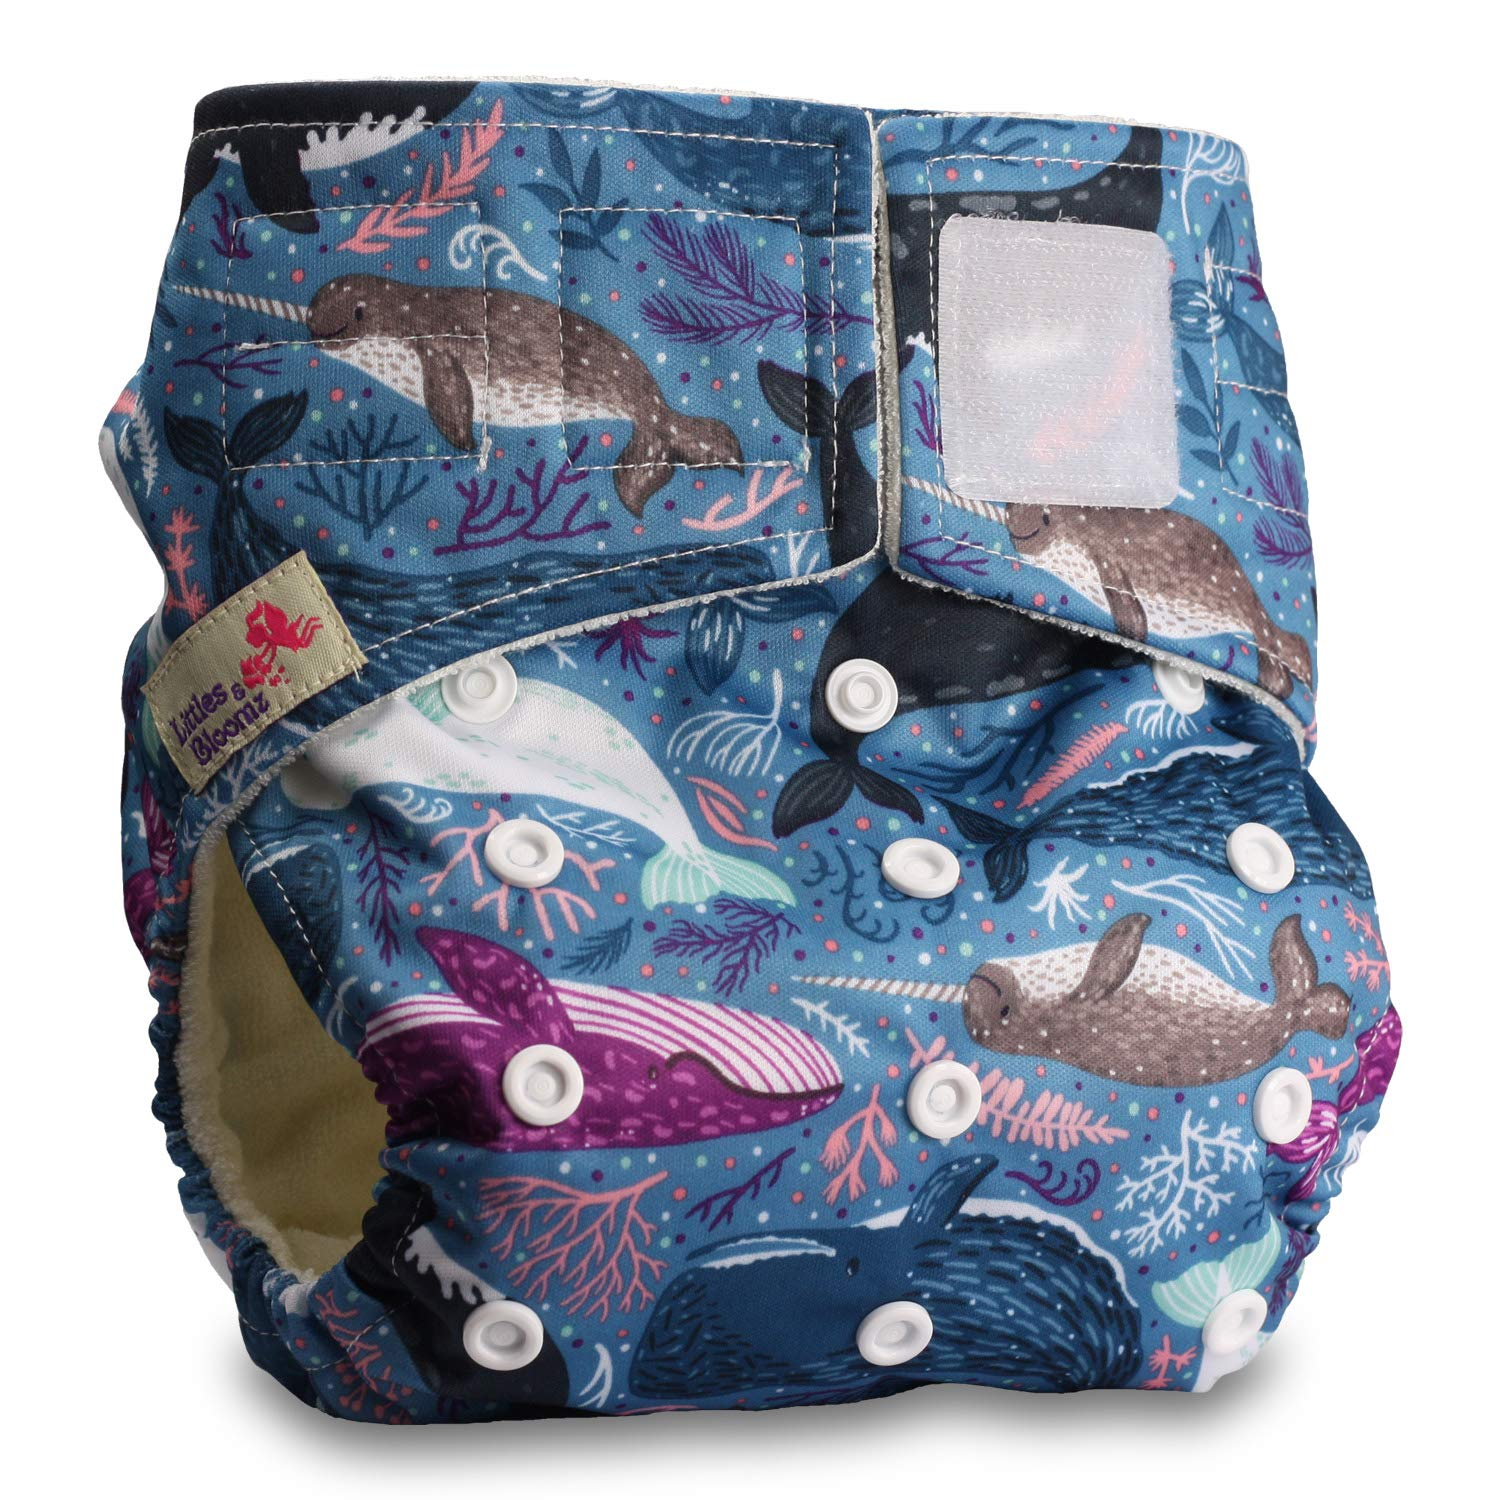 Fastener: Hook-Loop with 1 Bamboo Charcoal Insert Baby Cloth Washable Reusable Nappy Pocket Diaper Bamboo Pattern 59 Littles /& Bloomz